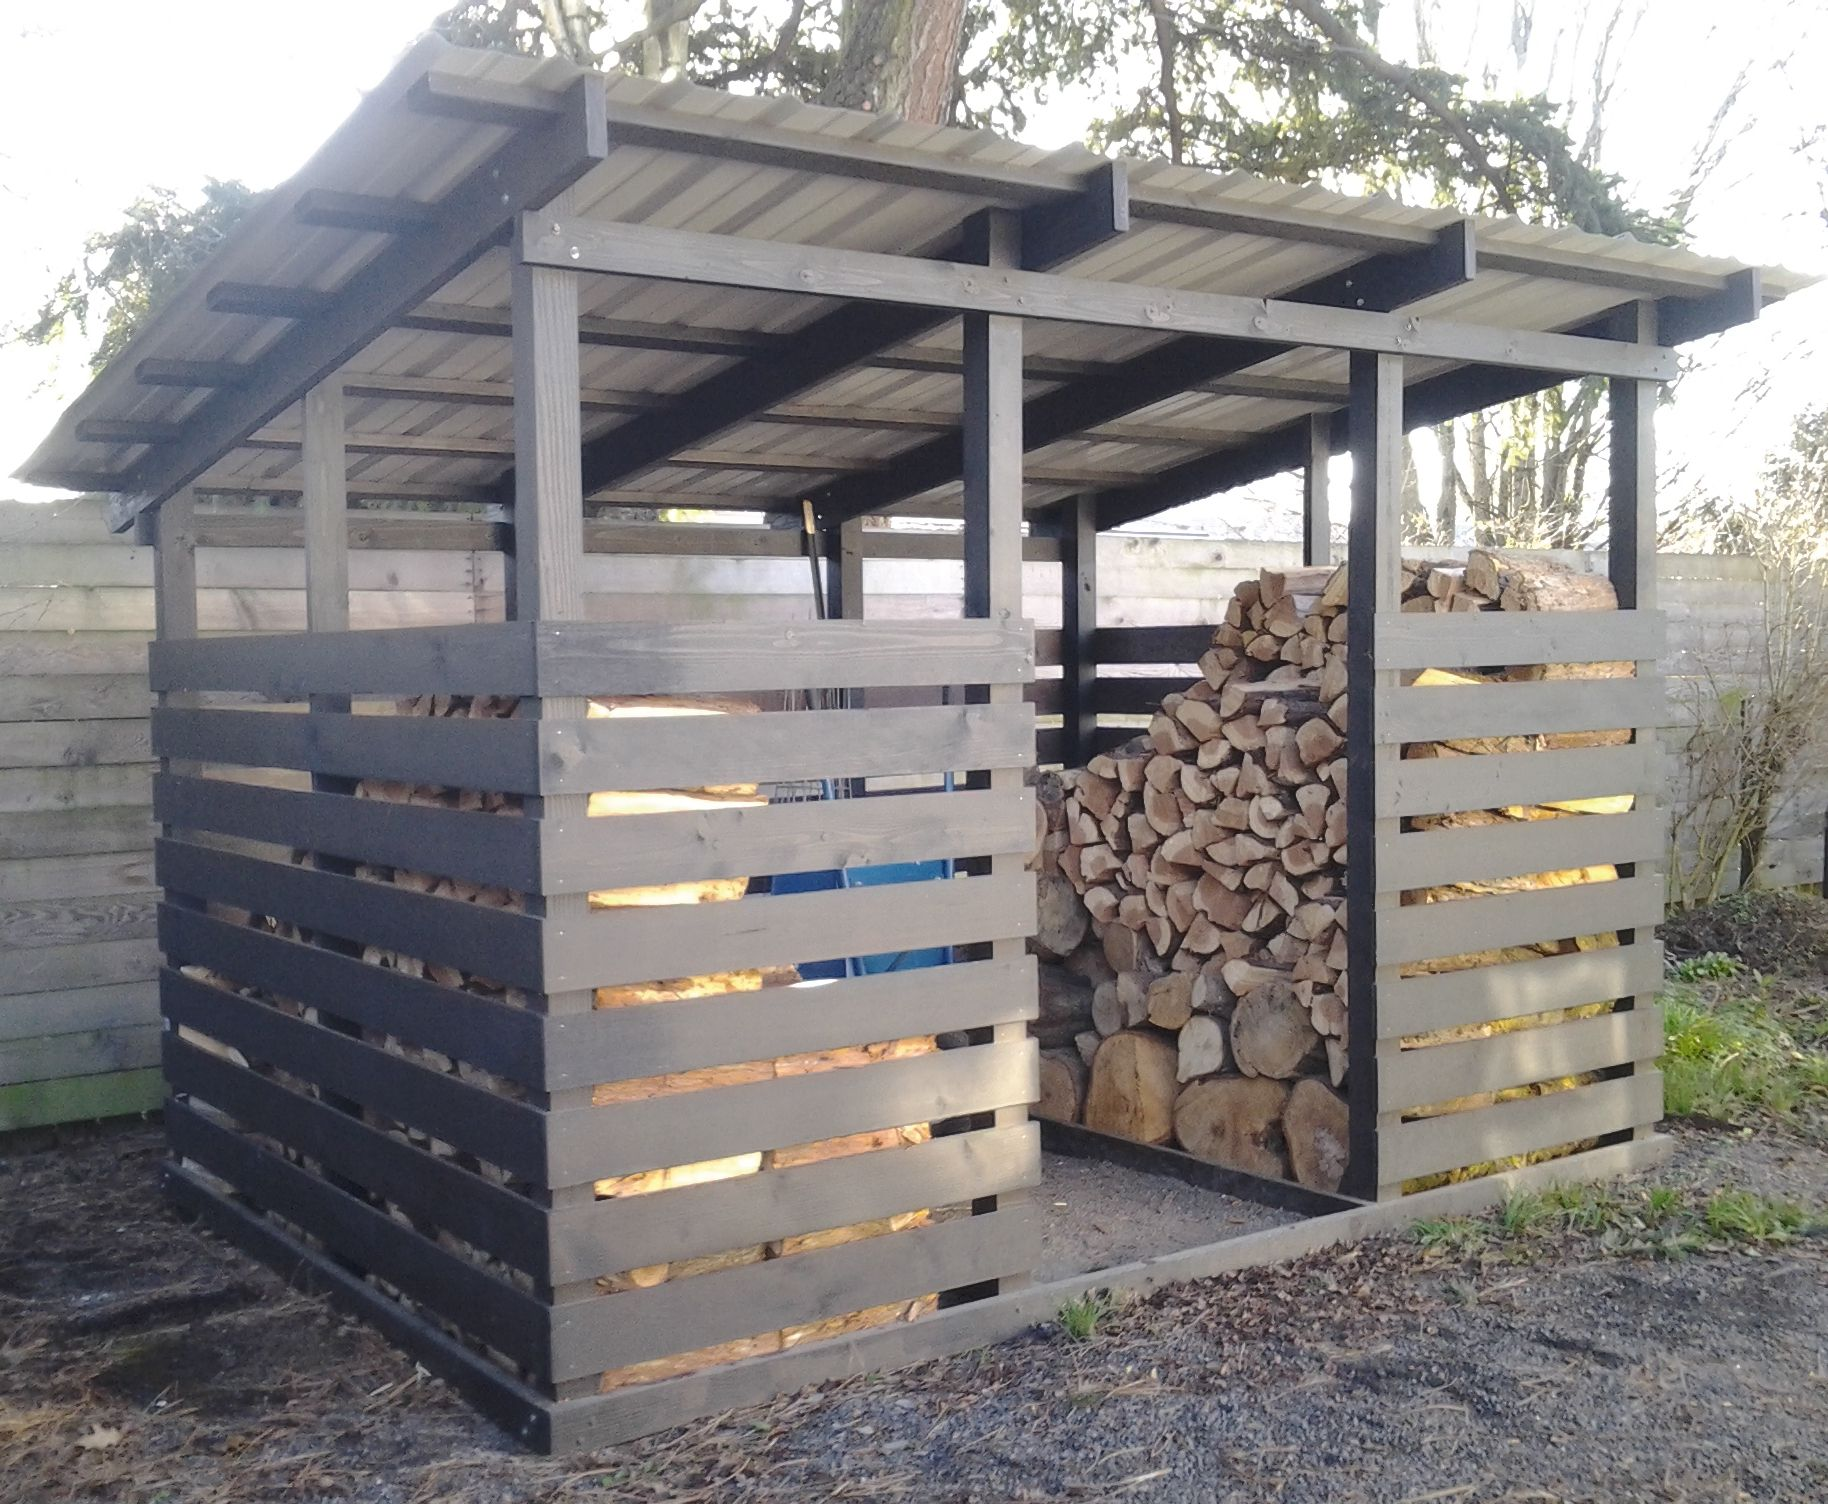 ^ 1000+ images about Wood shed storage ideas on Pinterest